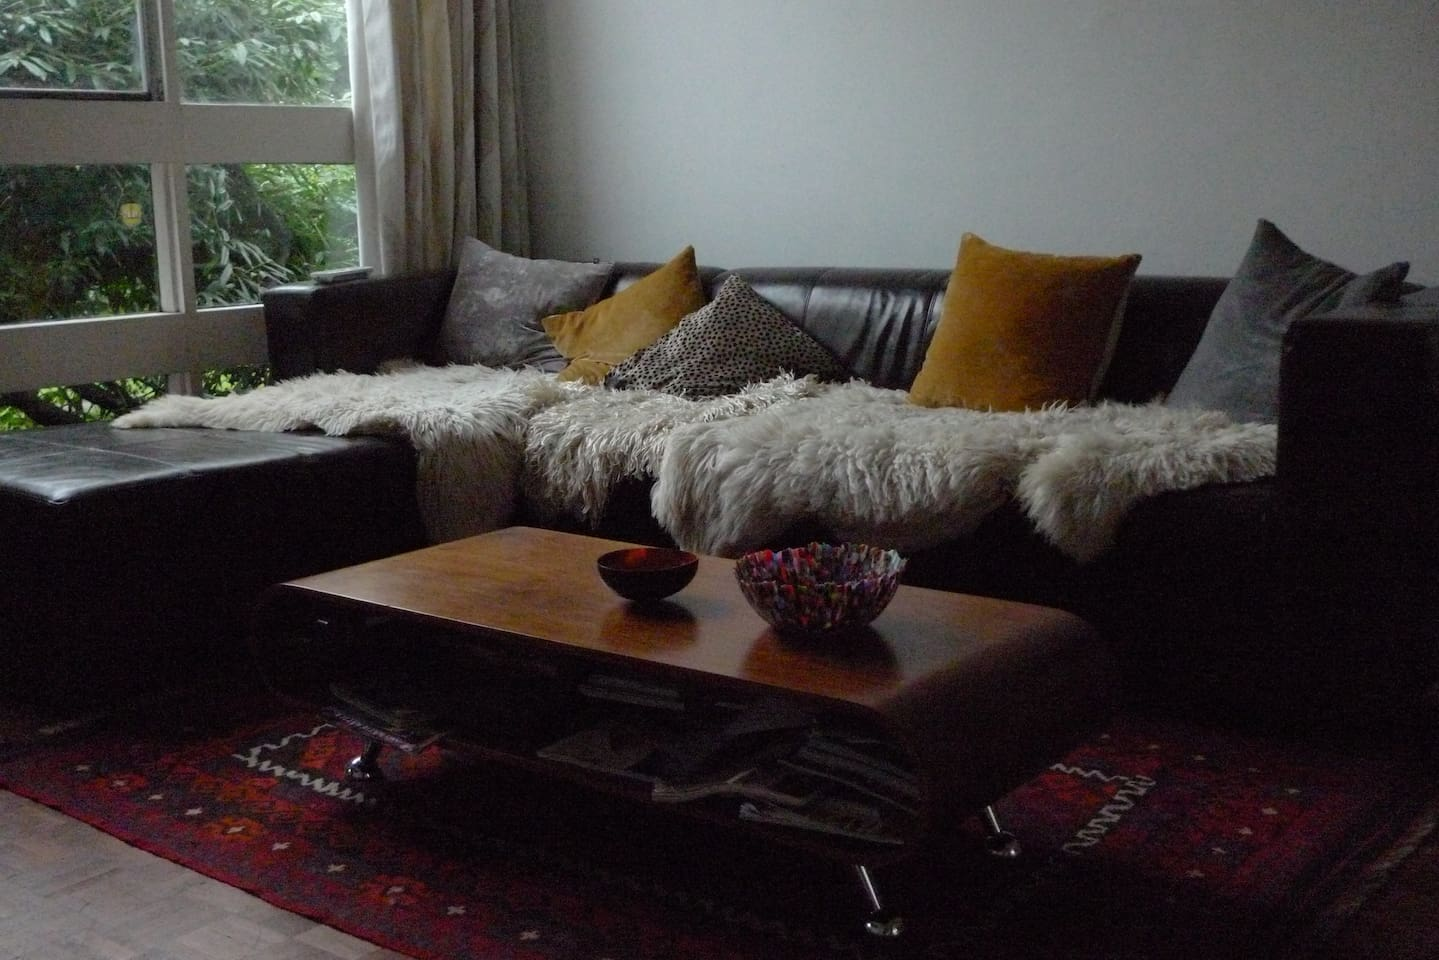 great sofa for watching TV